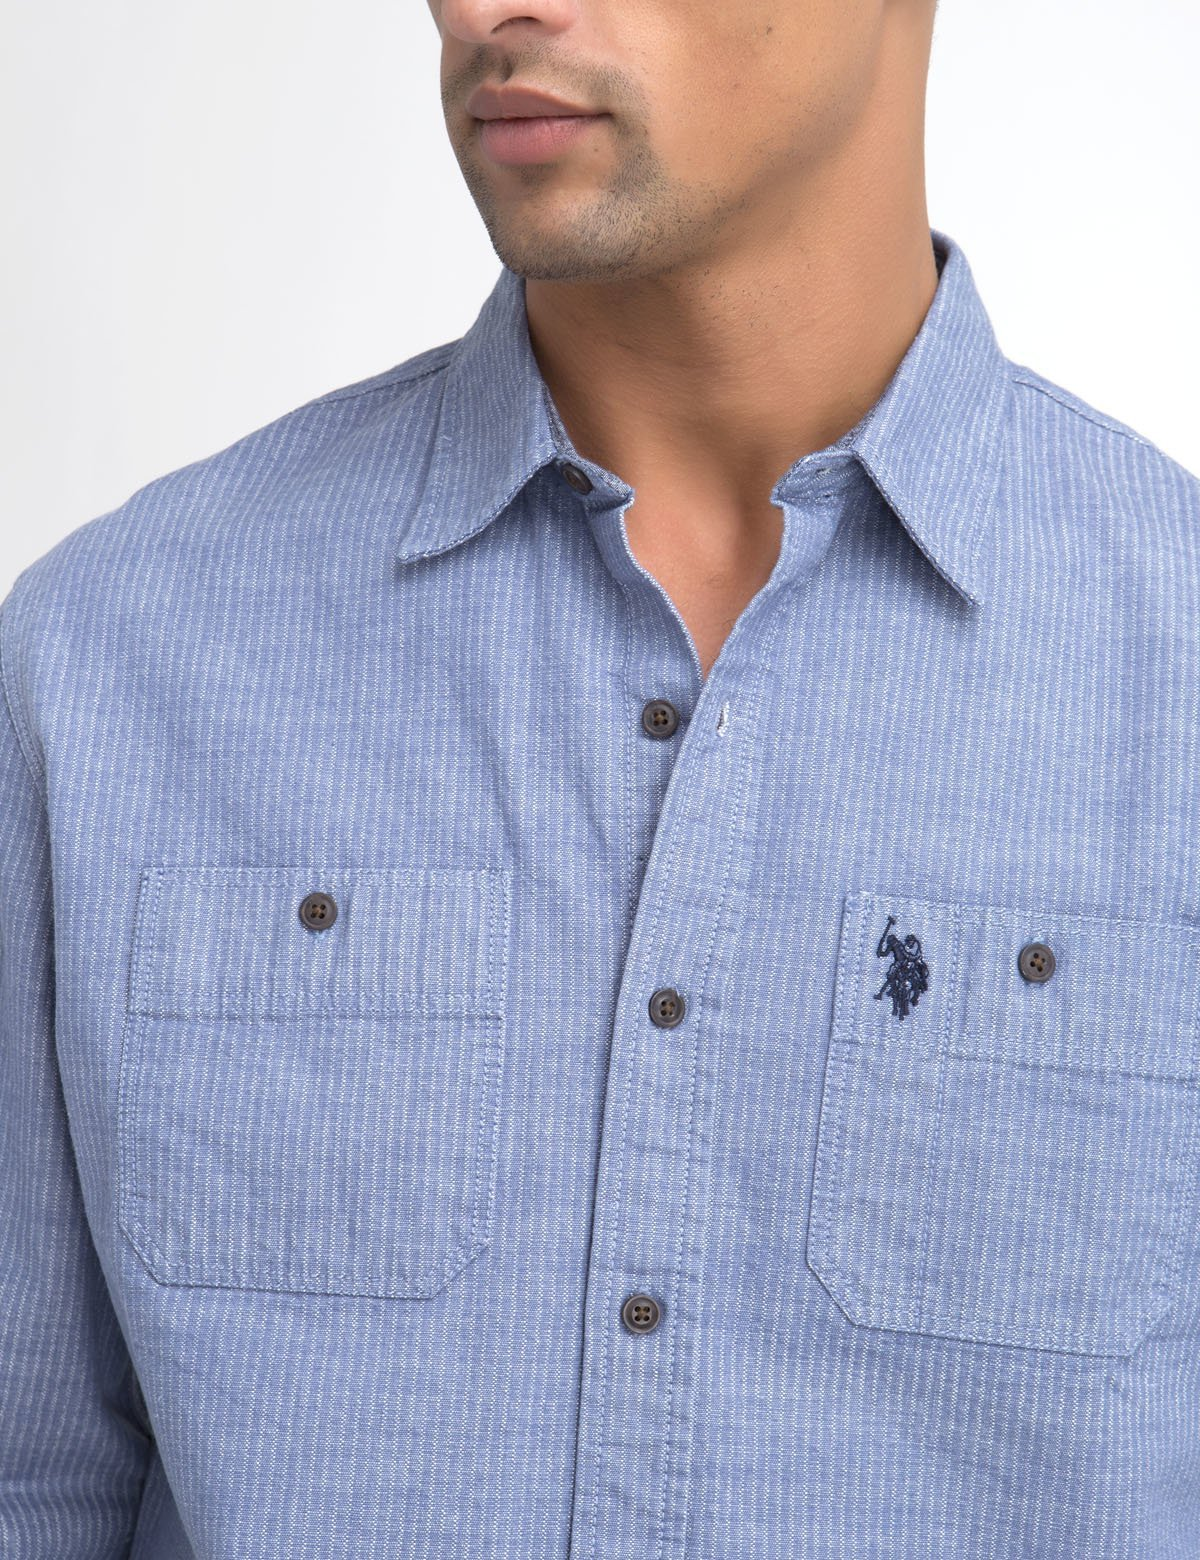 CLASSIC FIT TWO POCKET STRIPE SLUB SHIRT IN CANVAS - U.S. Polo Assn.